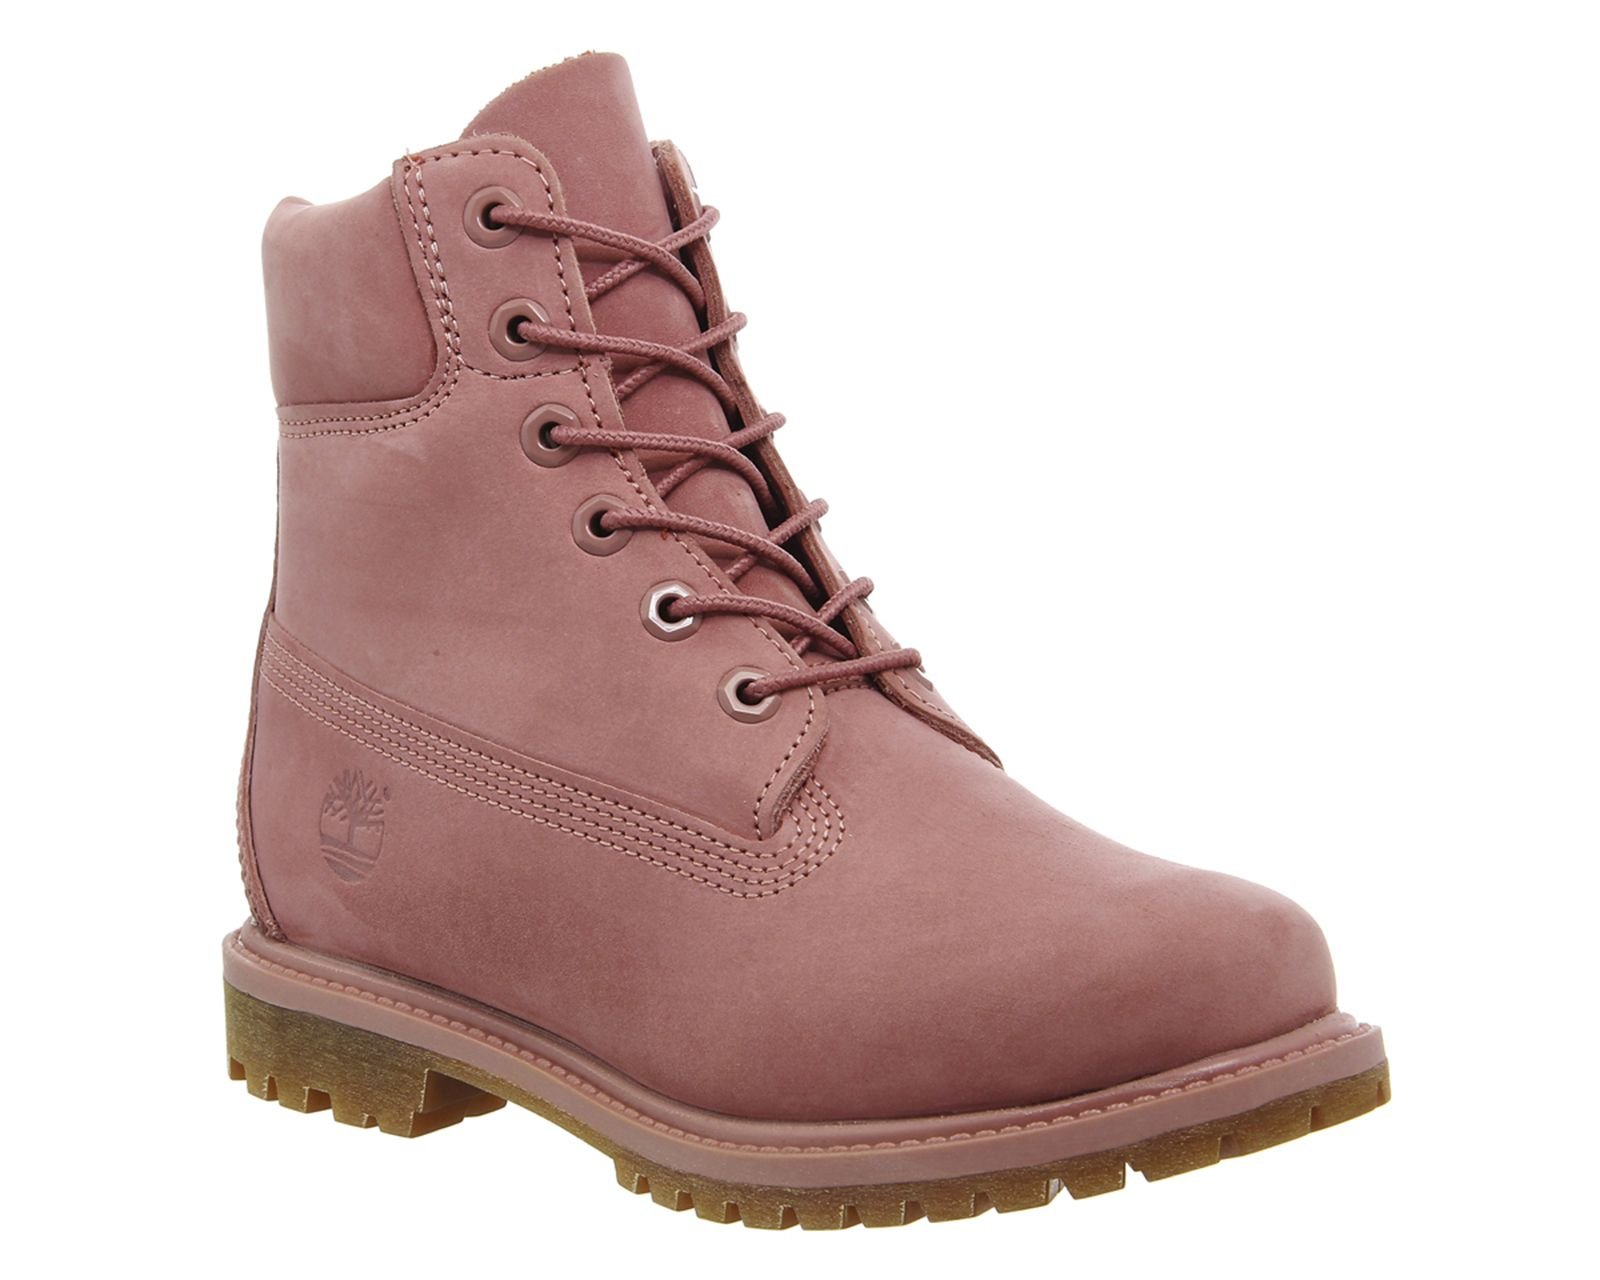 Timberland Premium 6 Womens Ankle Boots Dusty Rose Nubuck